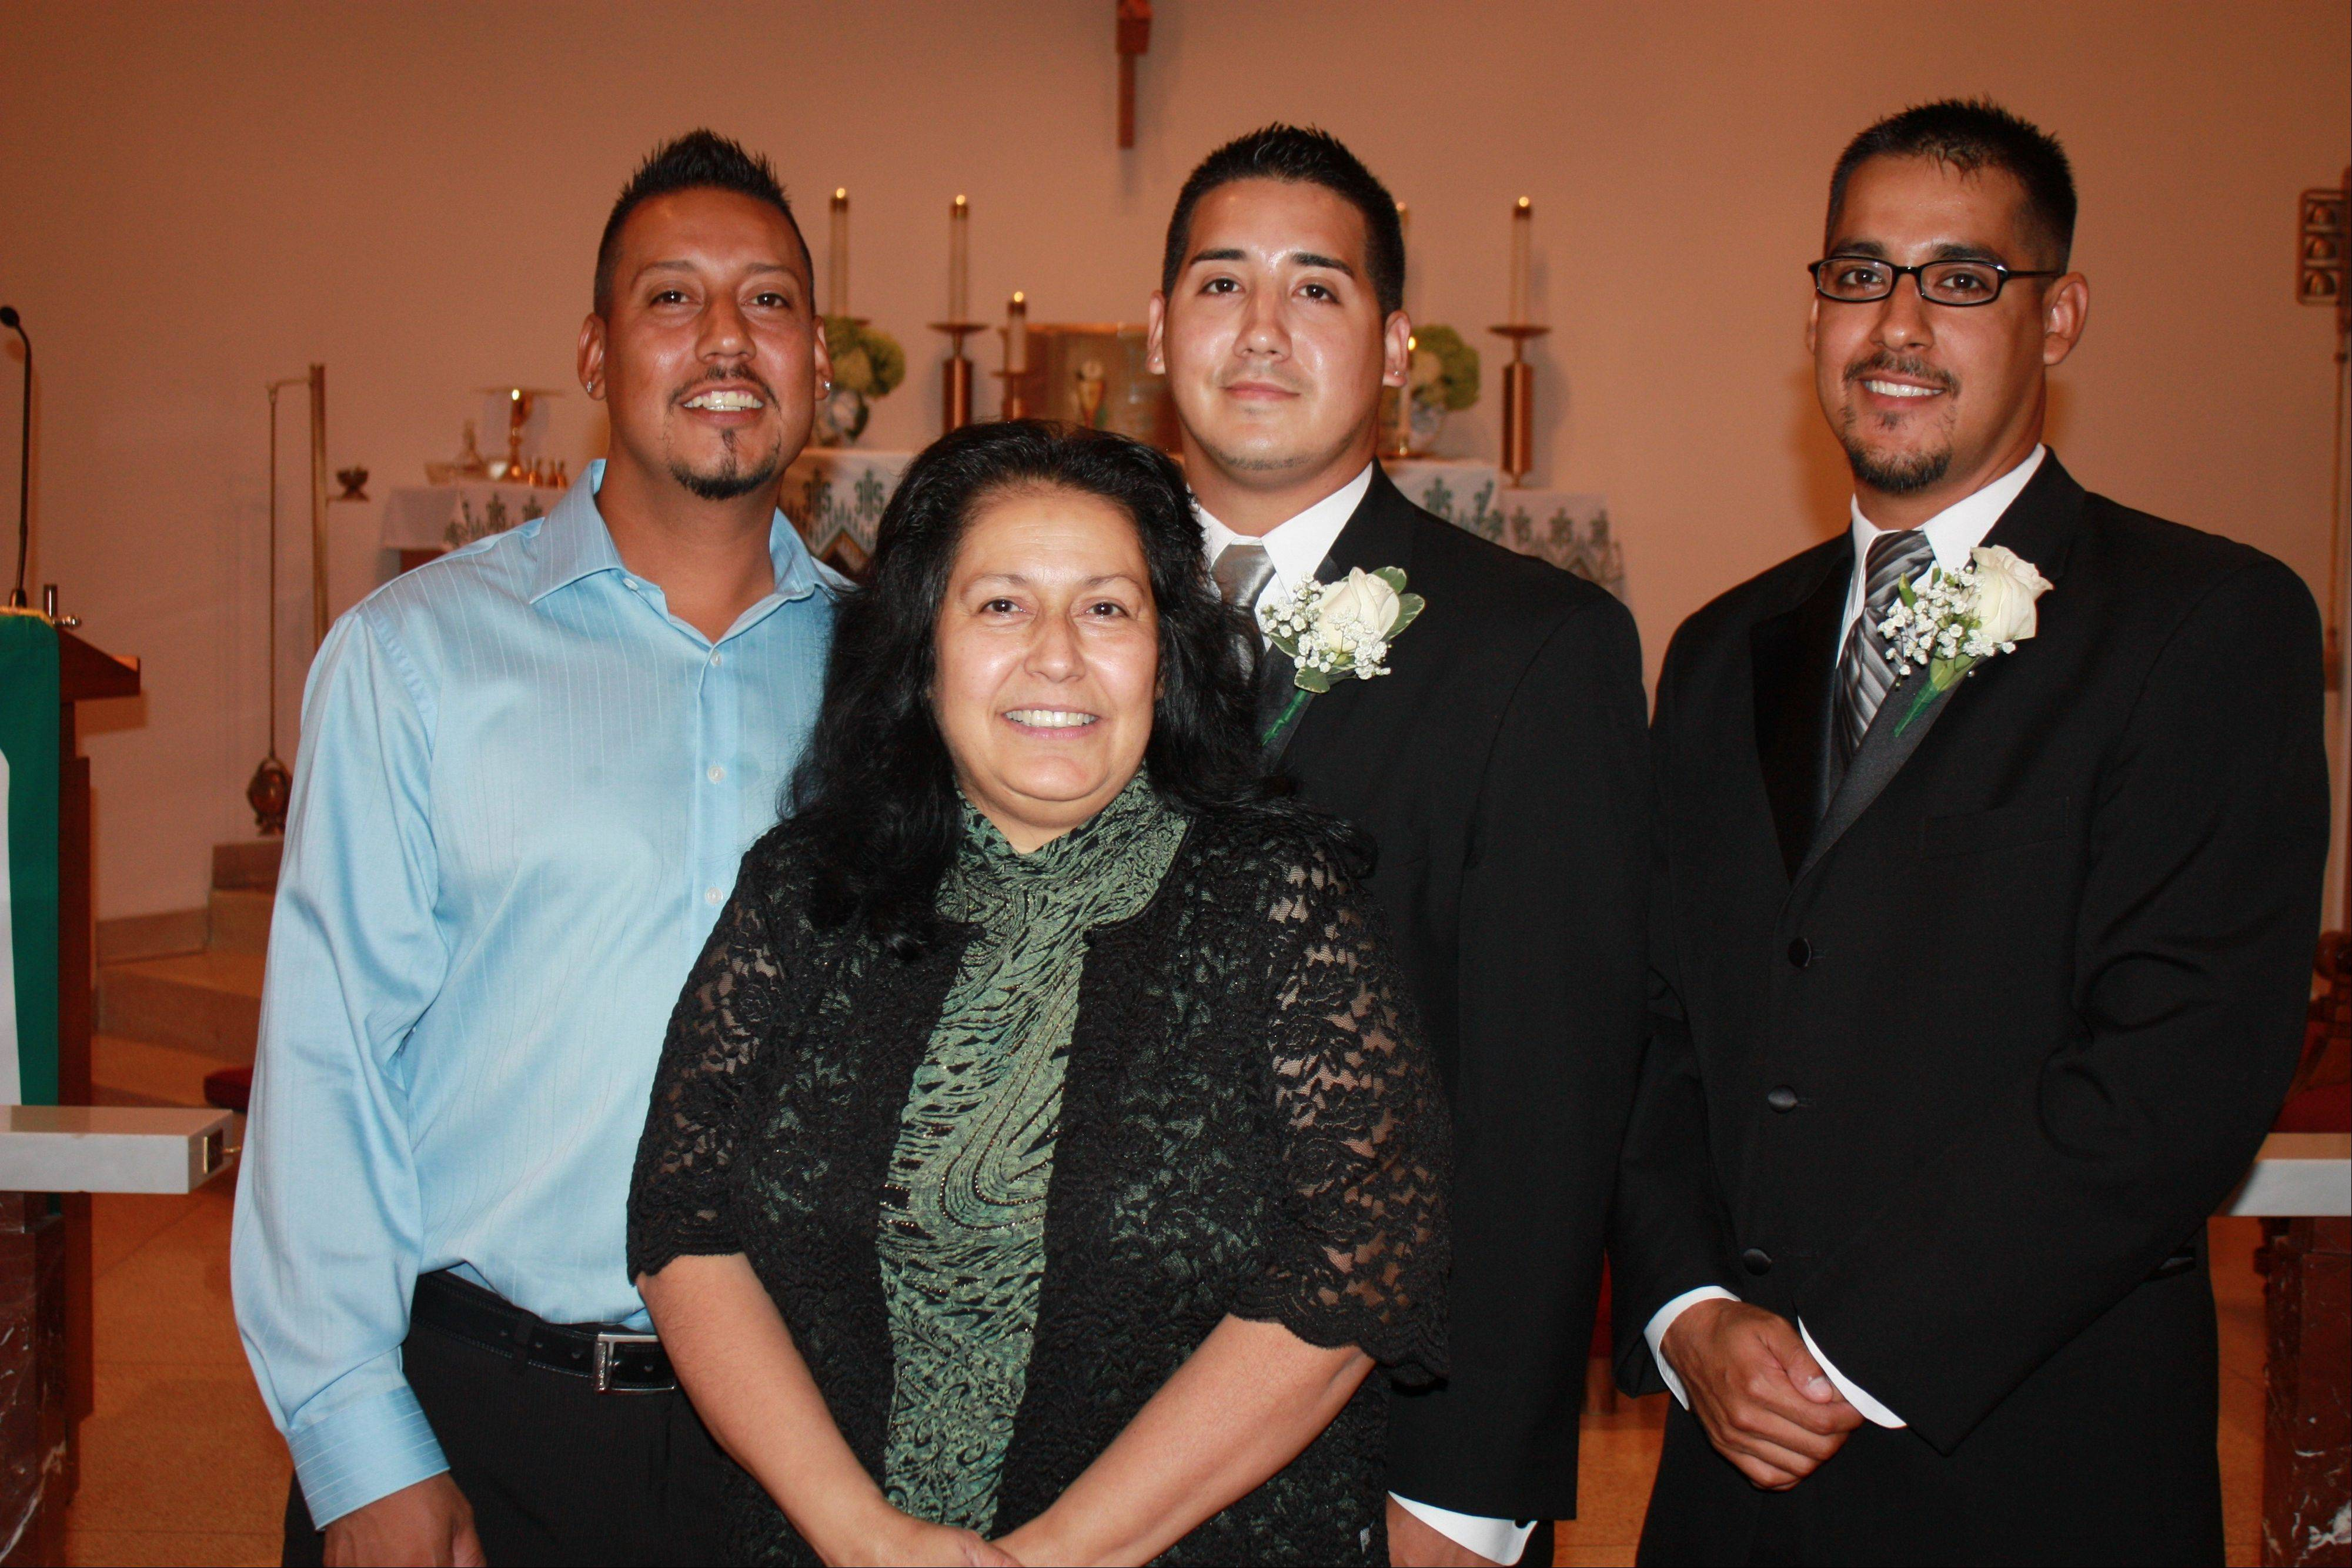 Angelita James, with her sons Lupe Martinez, left, Efren Galvan and Noe Corrall Galvan. The photo was taken the day Efren Galvan renewed his wedding vows.